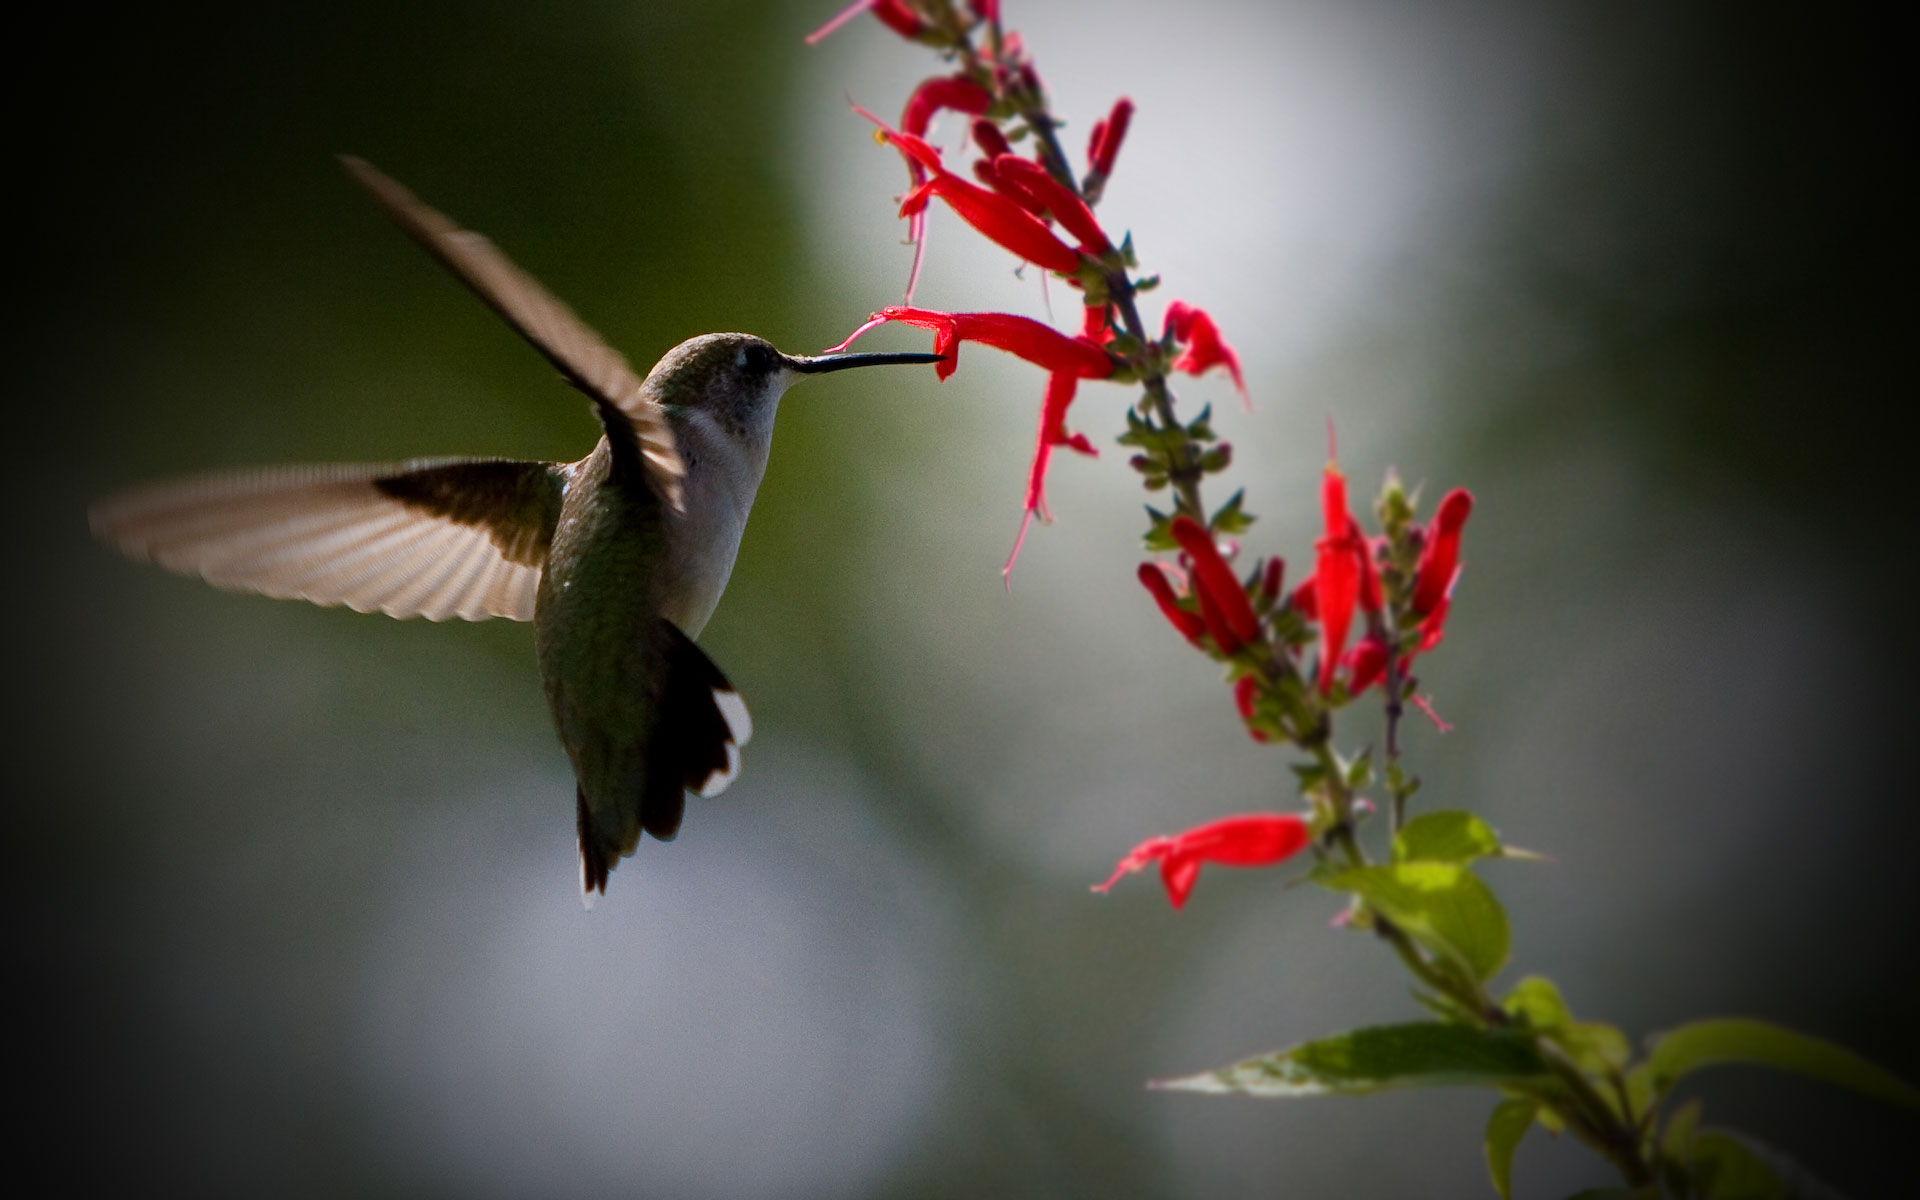 Stunning Hummingbird Wallpaper